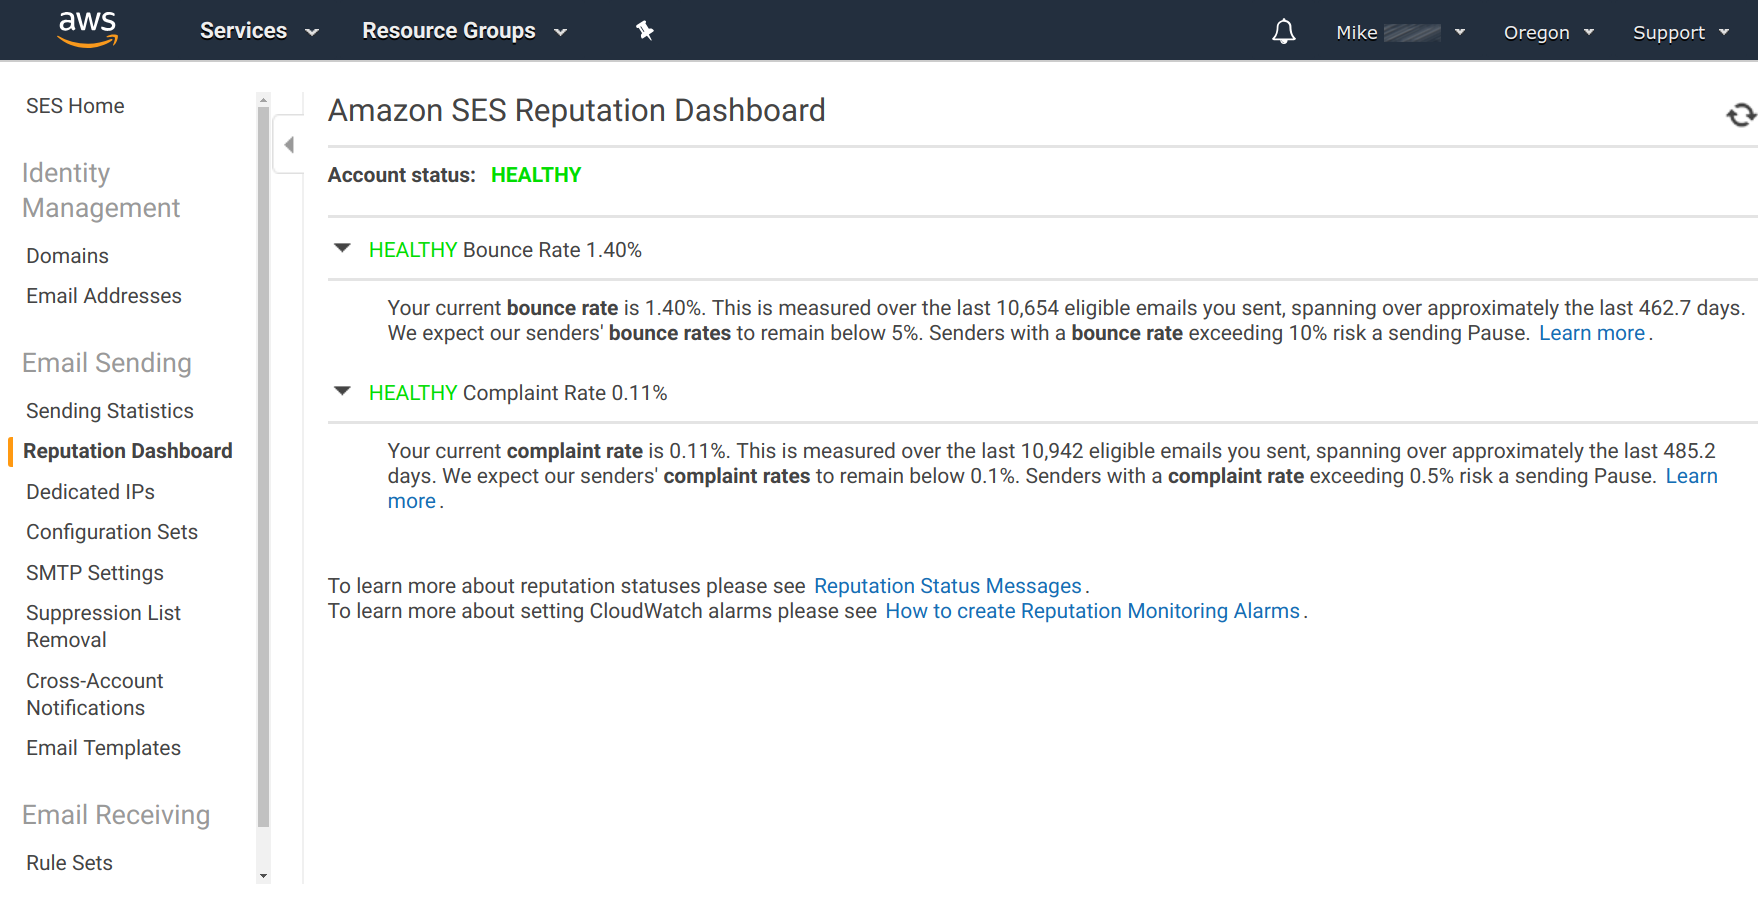 Amazon SES - Reputation Dashboard